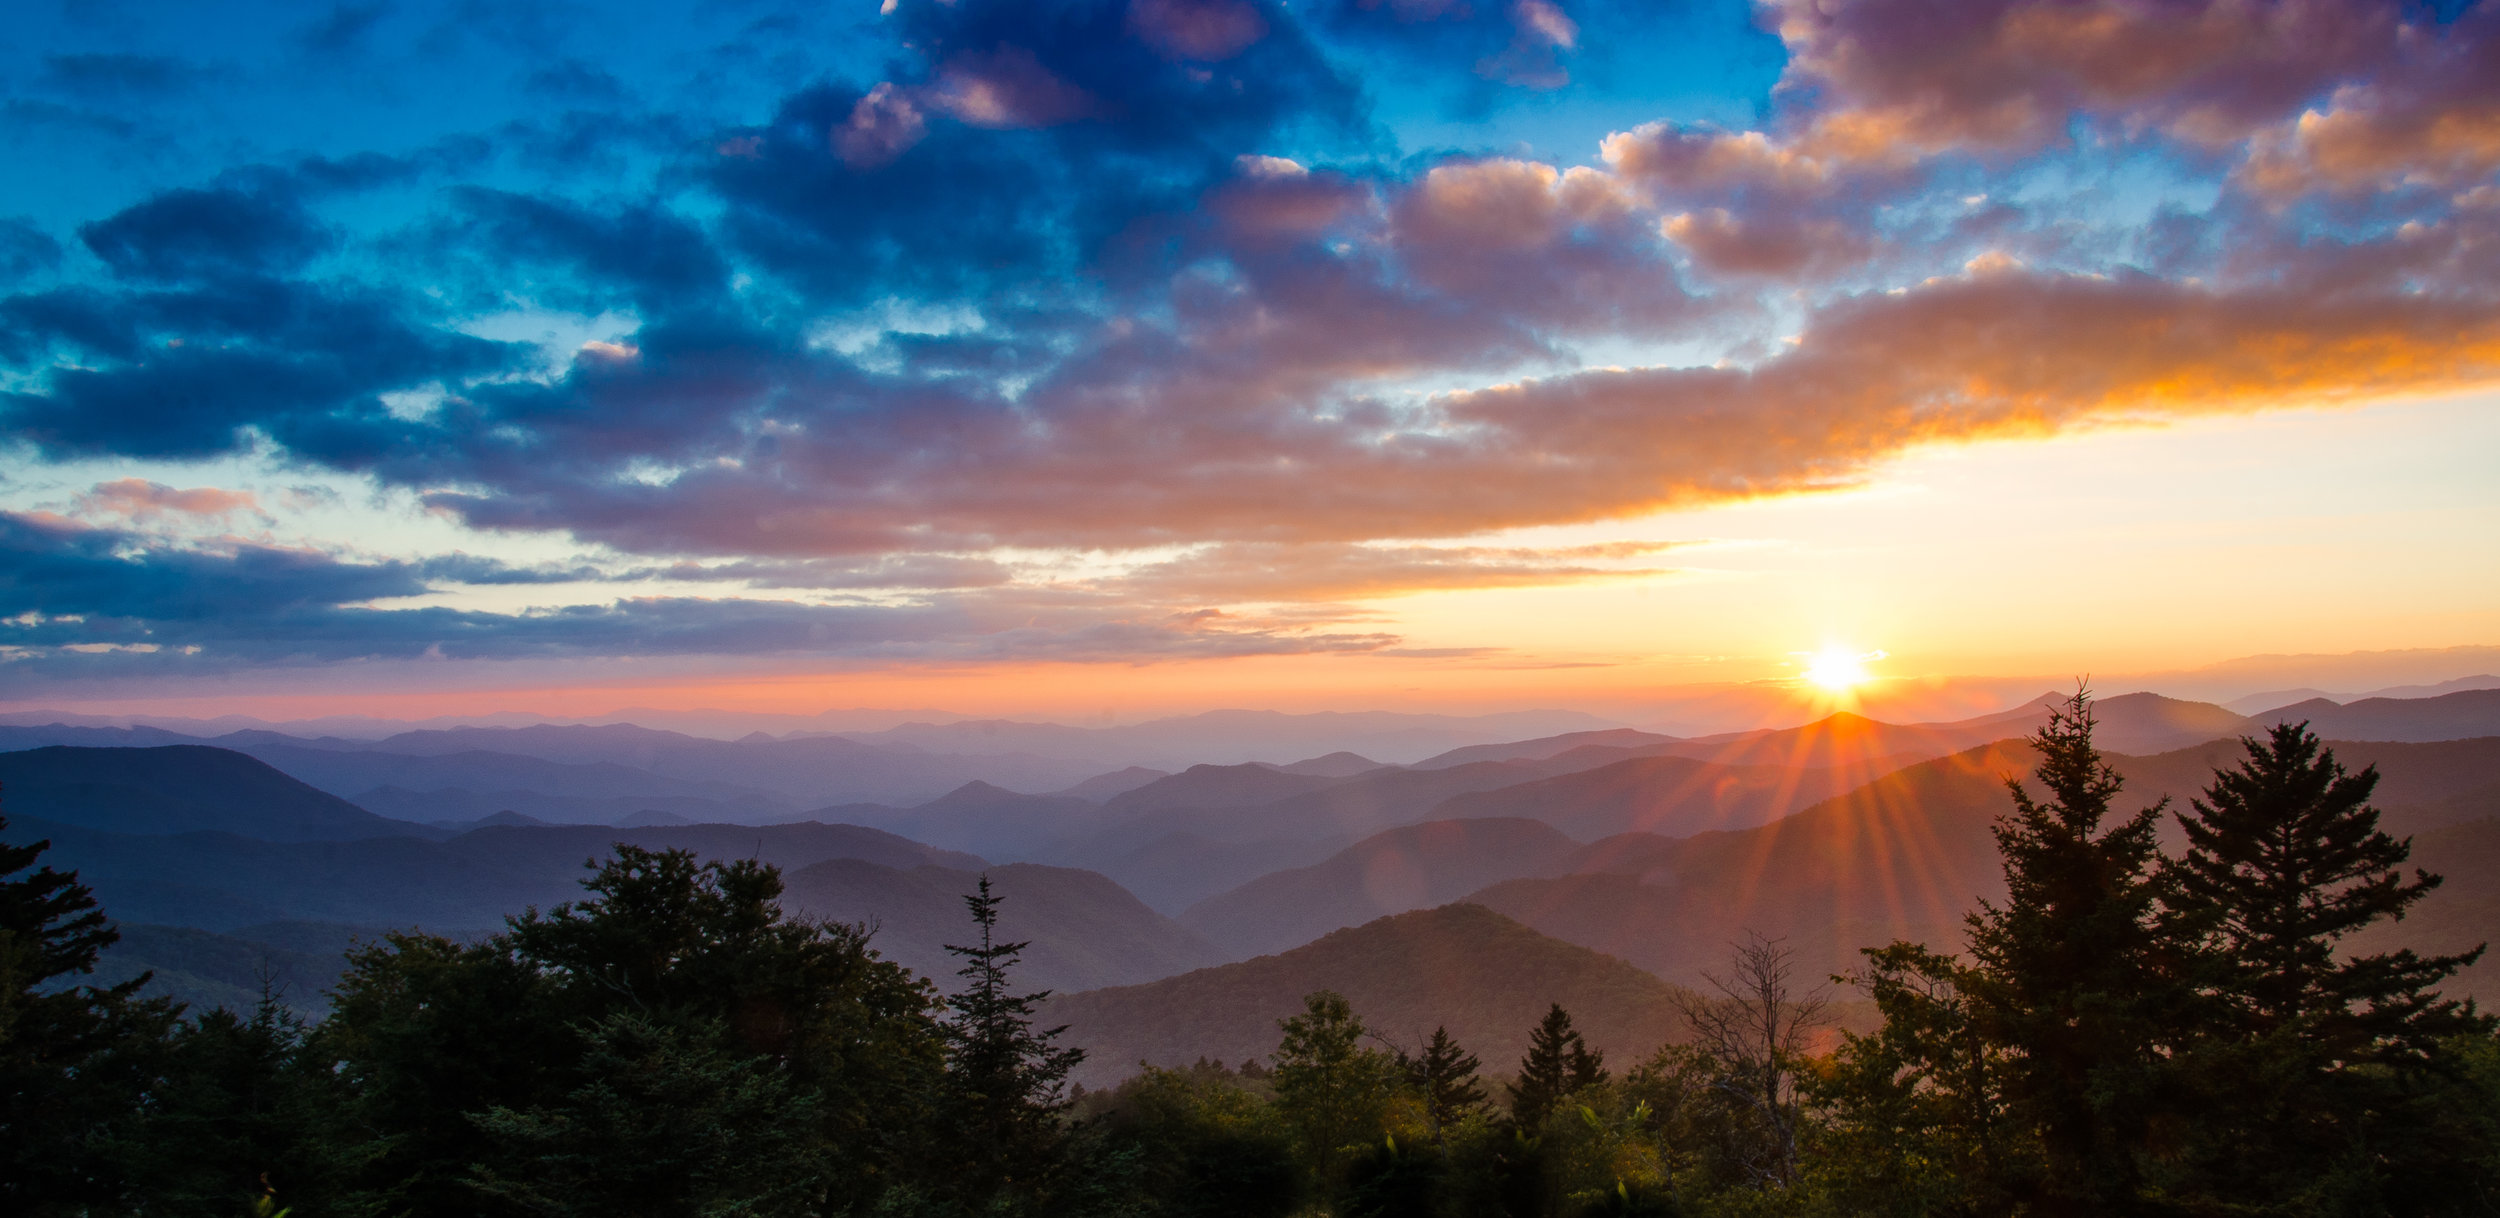 north-carolina-sunset-overlook-amber-clouds-mountains-1425647-pxhere.com.jpg